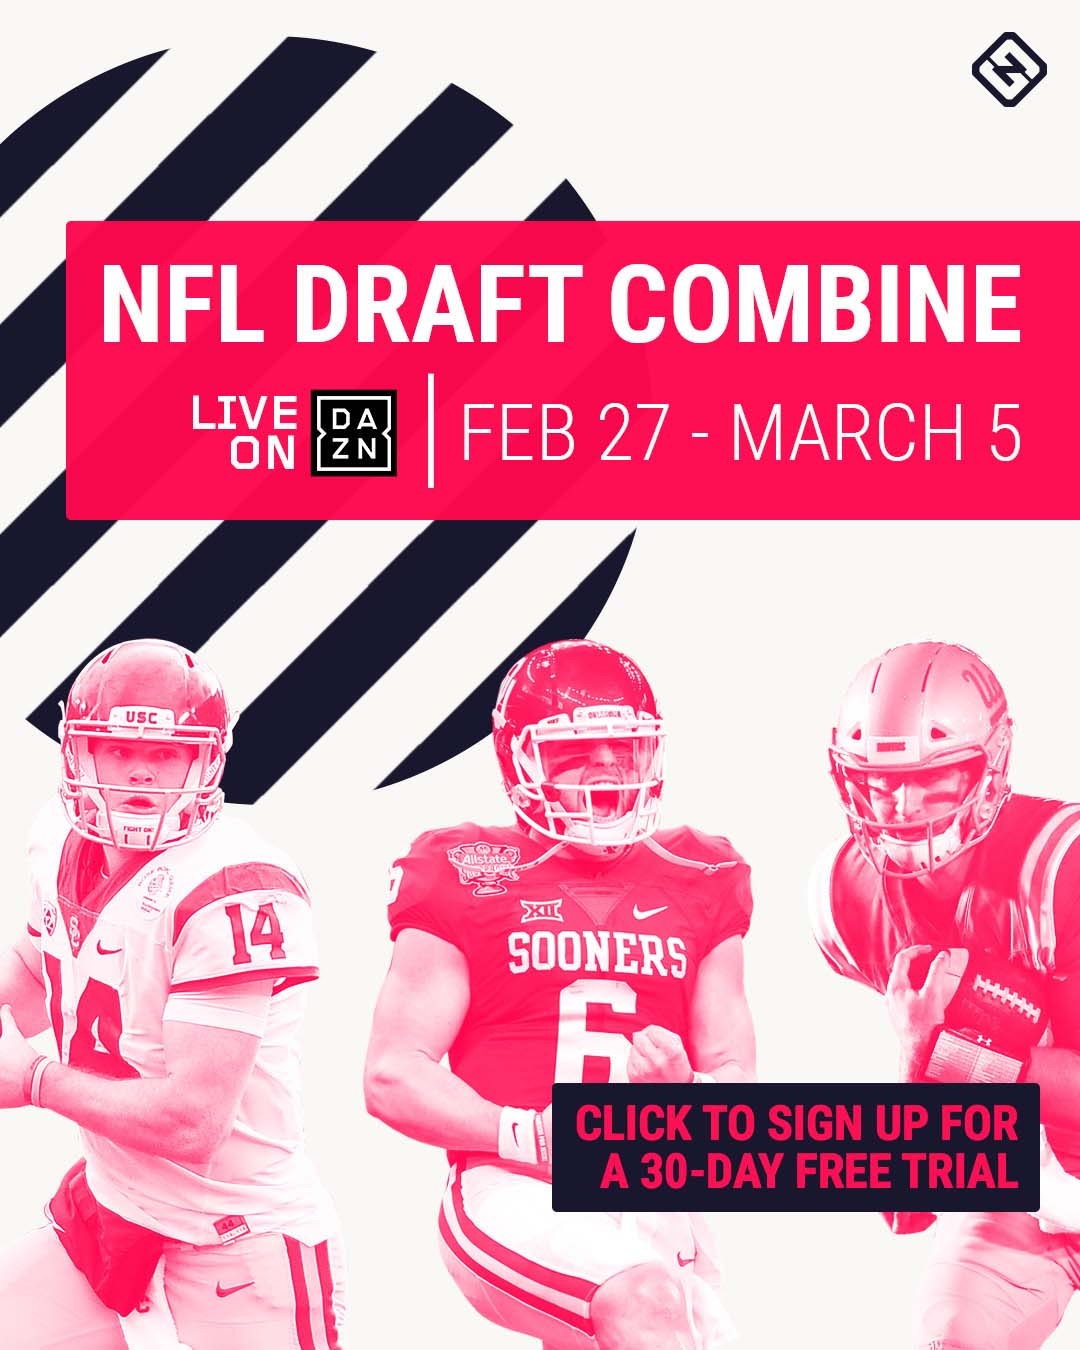 NFL-Combine-graphic